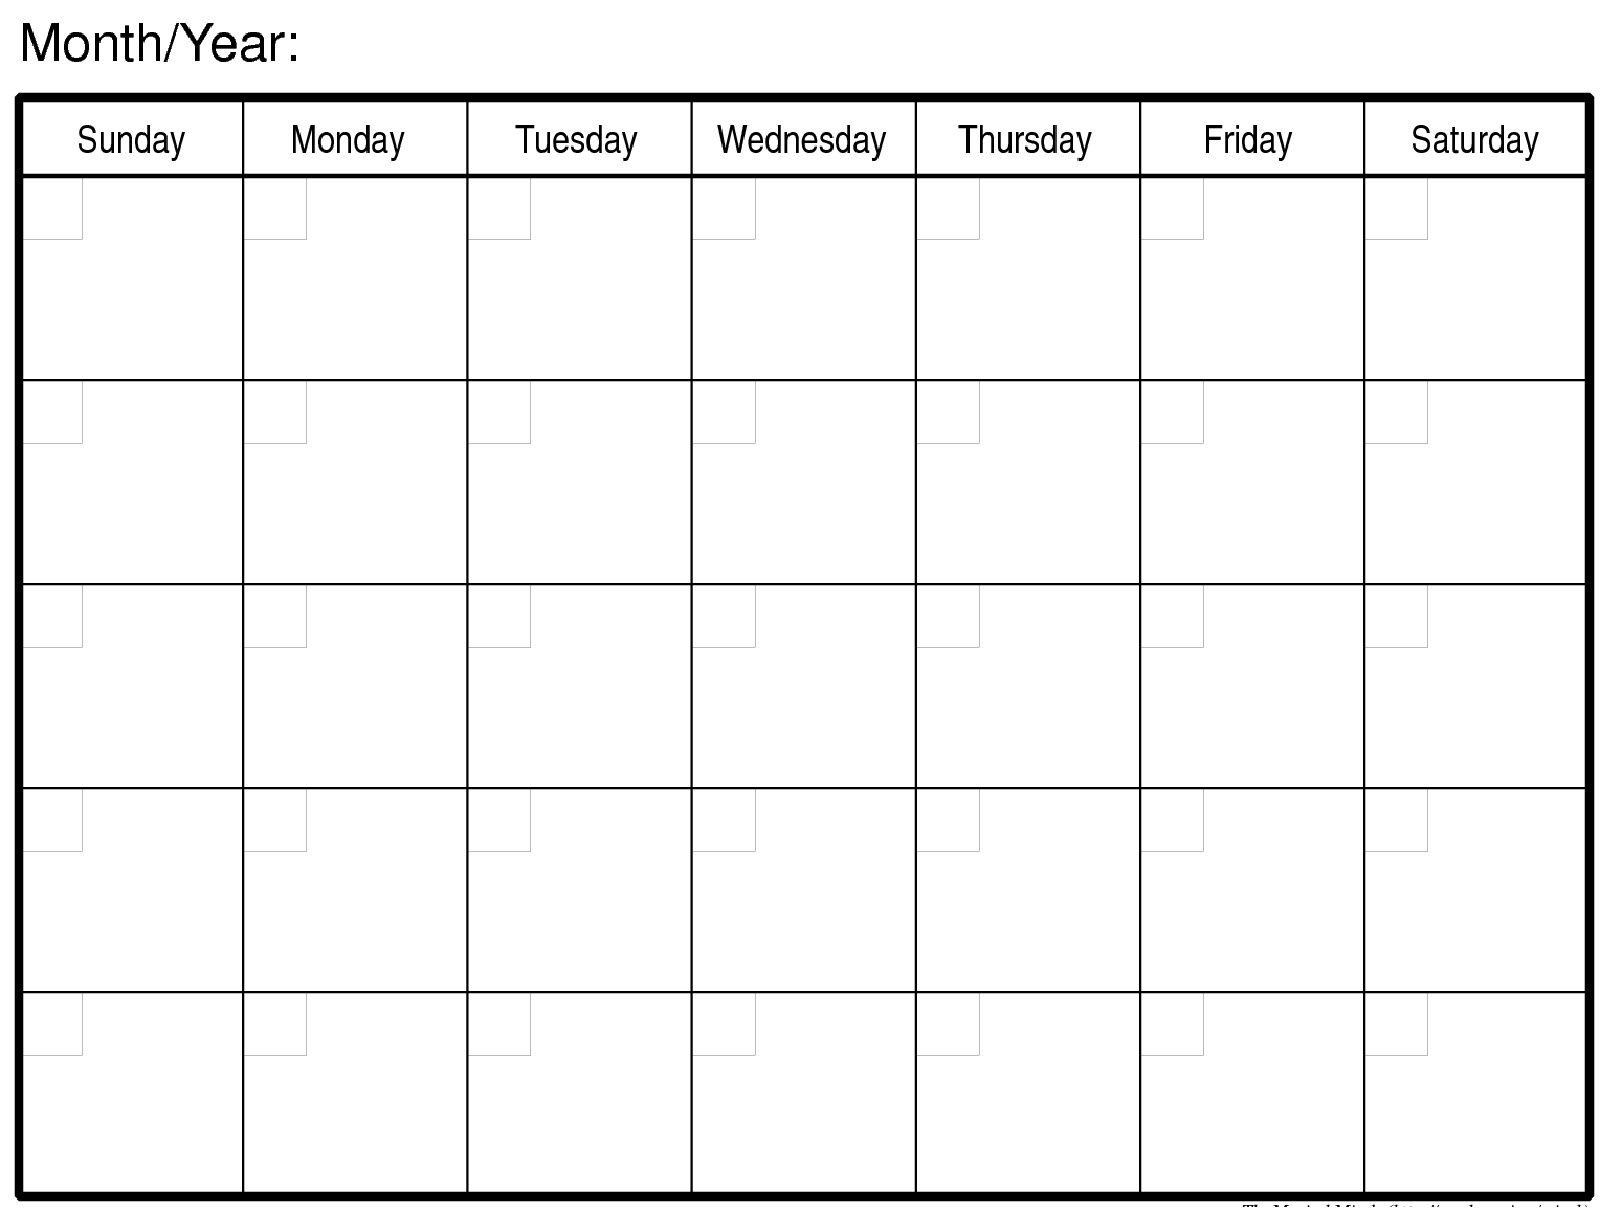 Blank Calendar To Print Printable Fine Free | Mightymic  Blank Calendar For A Month